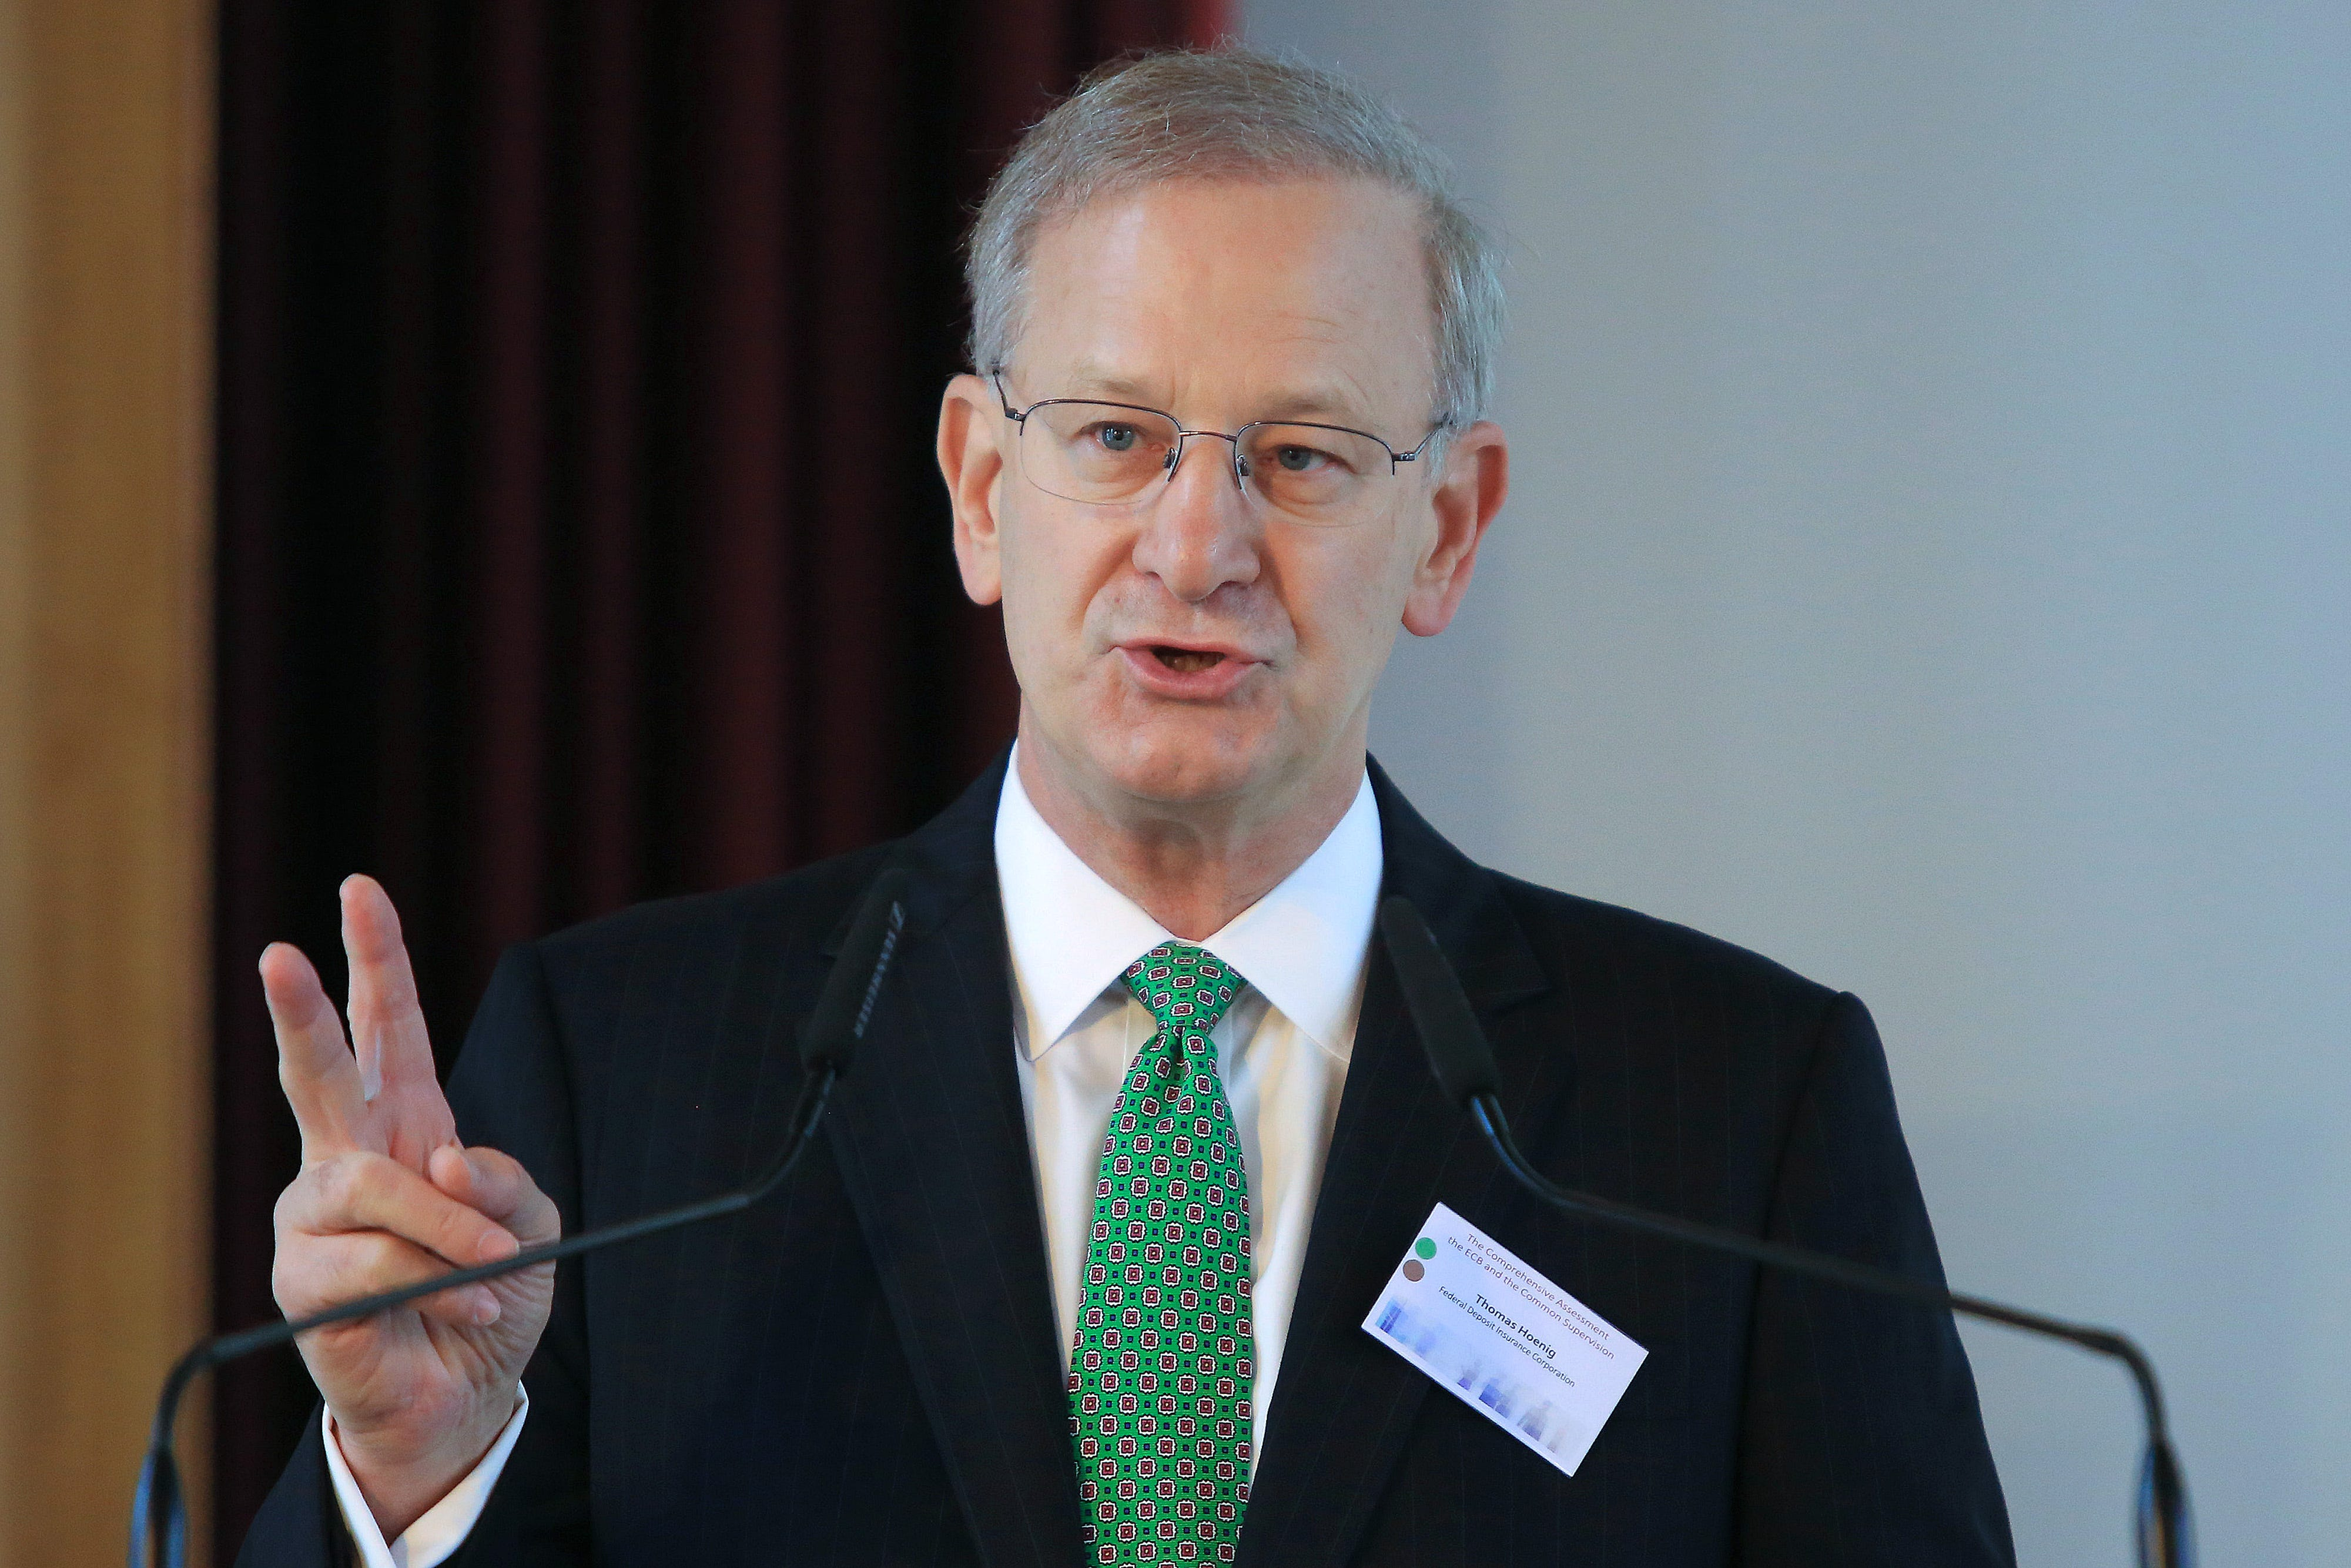 Delamaide: Fed critic says banks still too risky